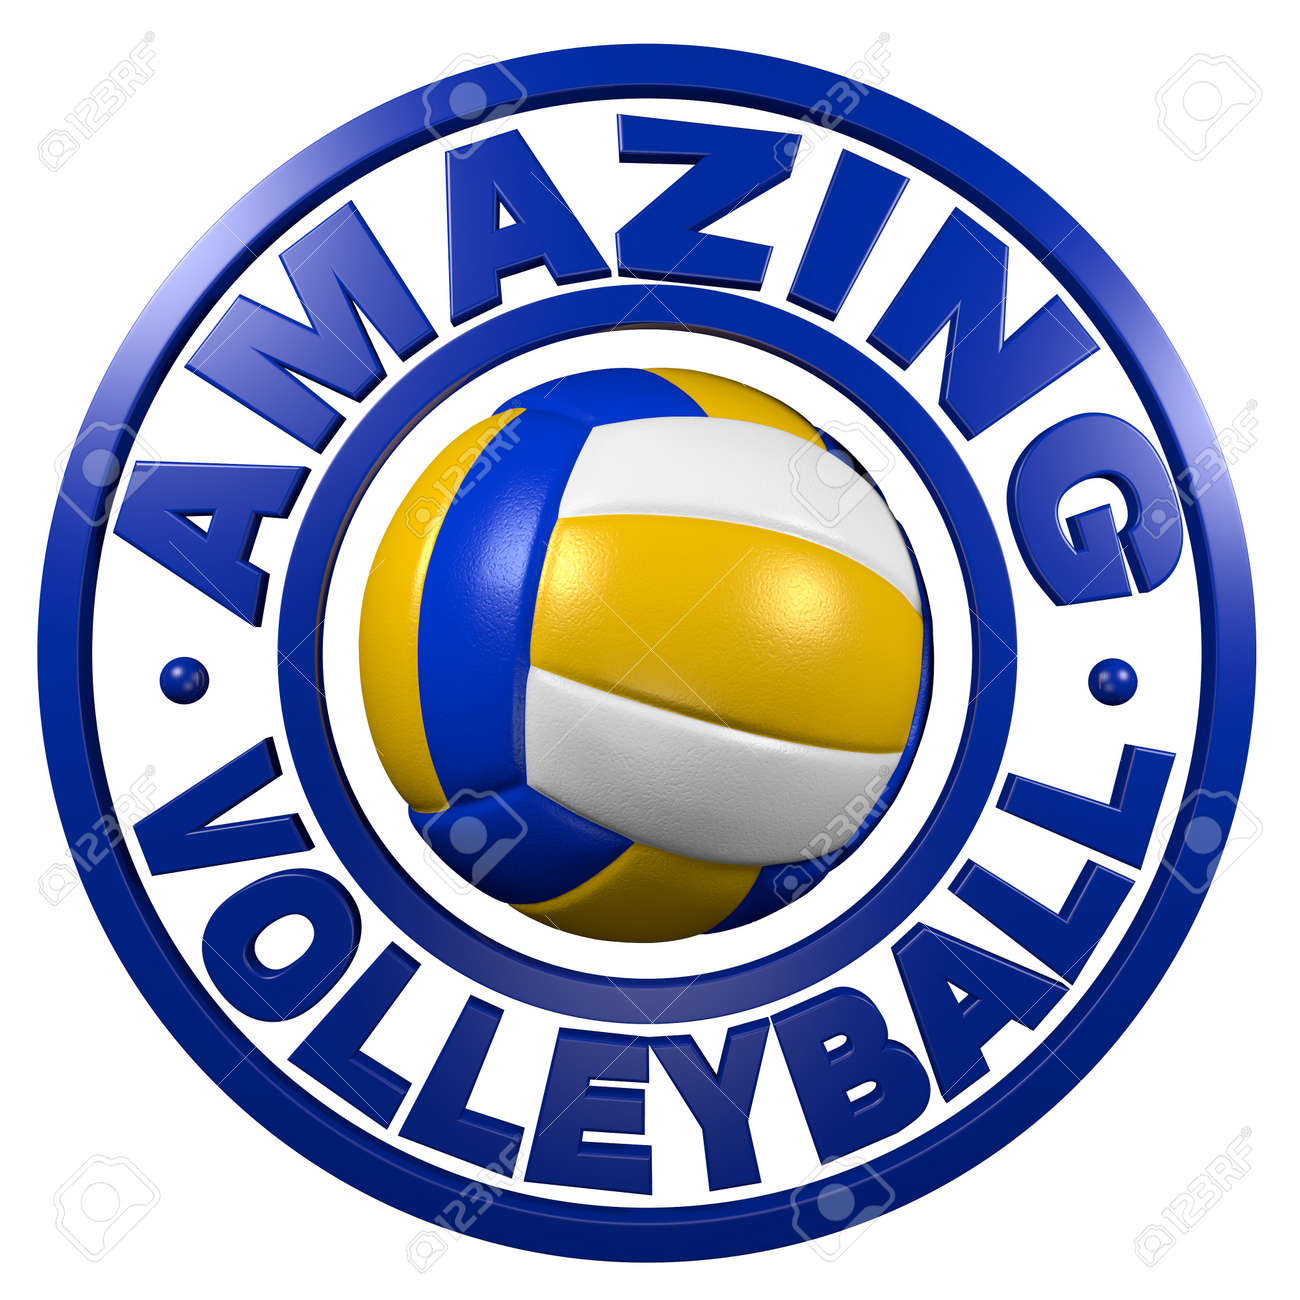 Amazing Volleyball circular design with a white background - 15617894